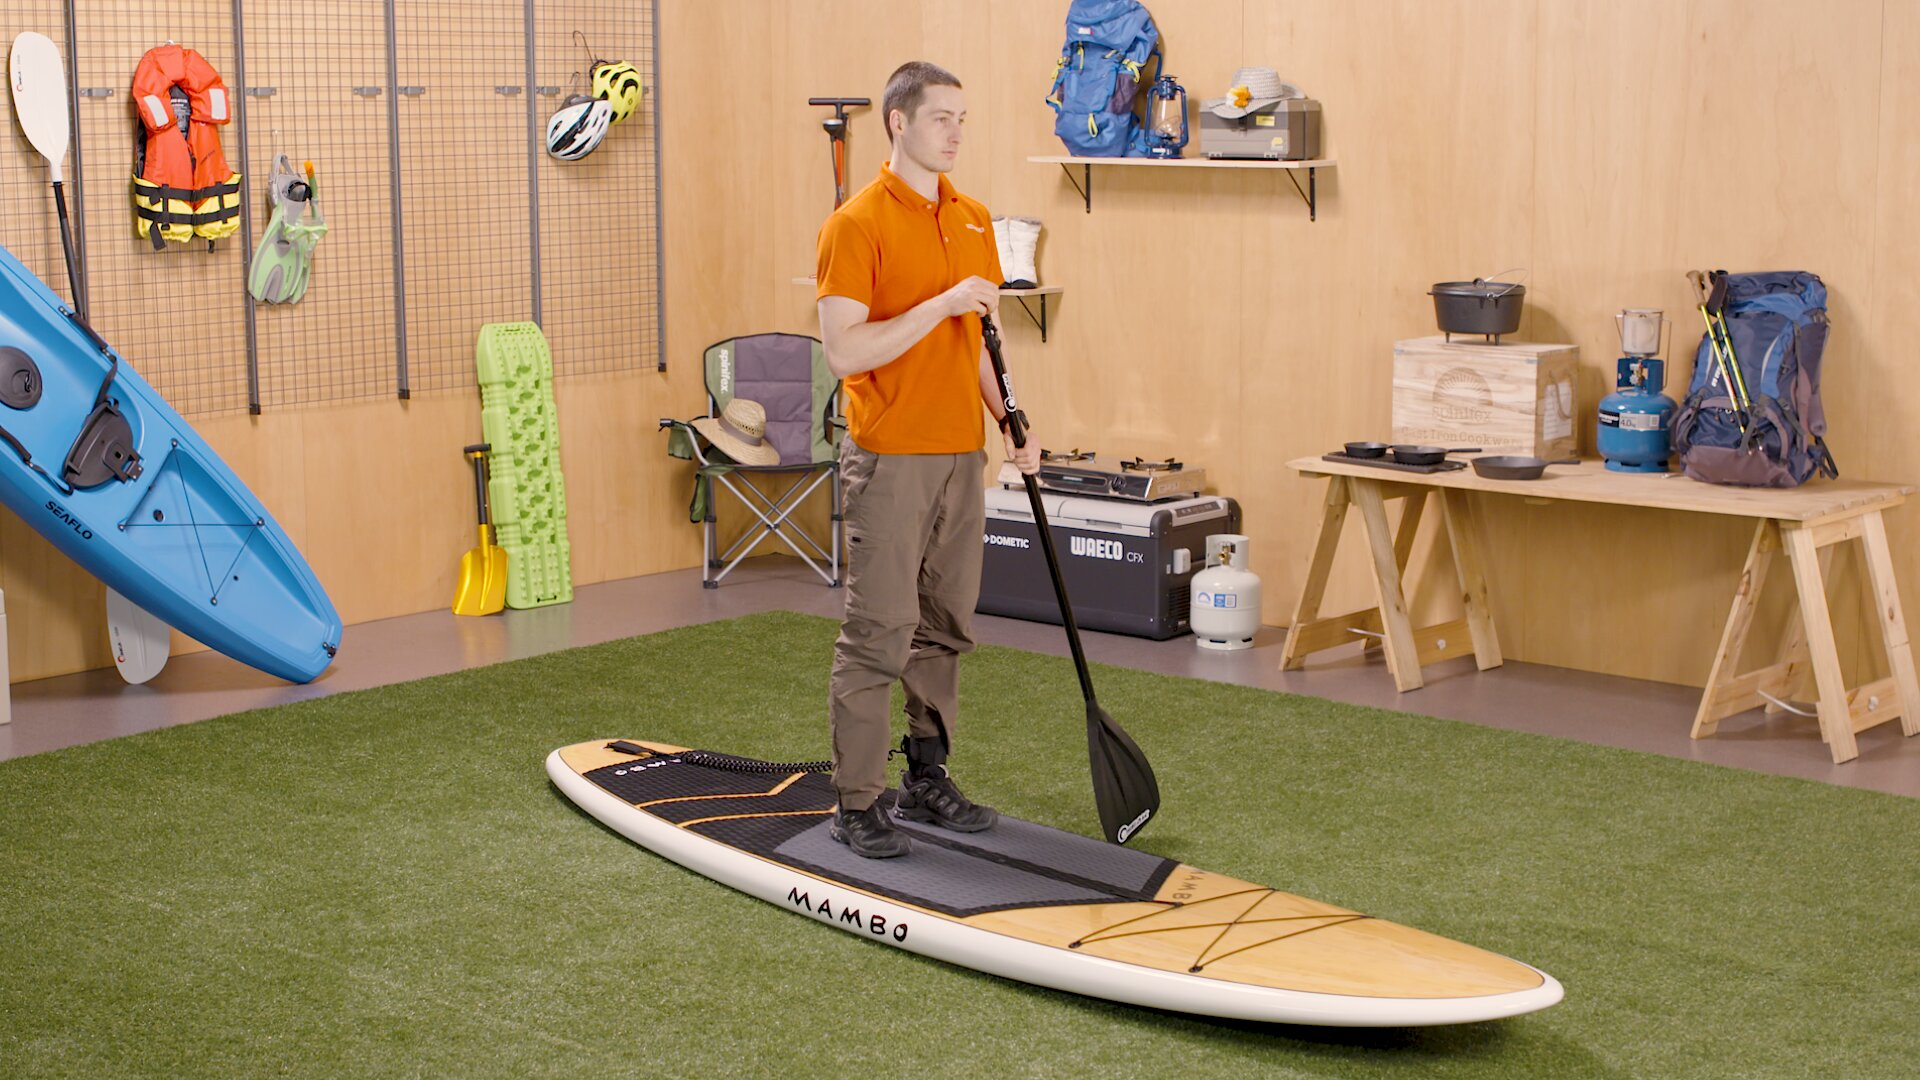 How To Choose A Board - Stand Up Paddle Board